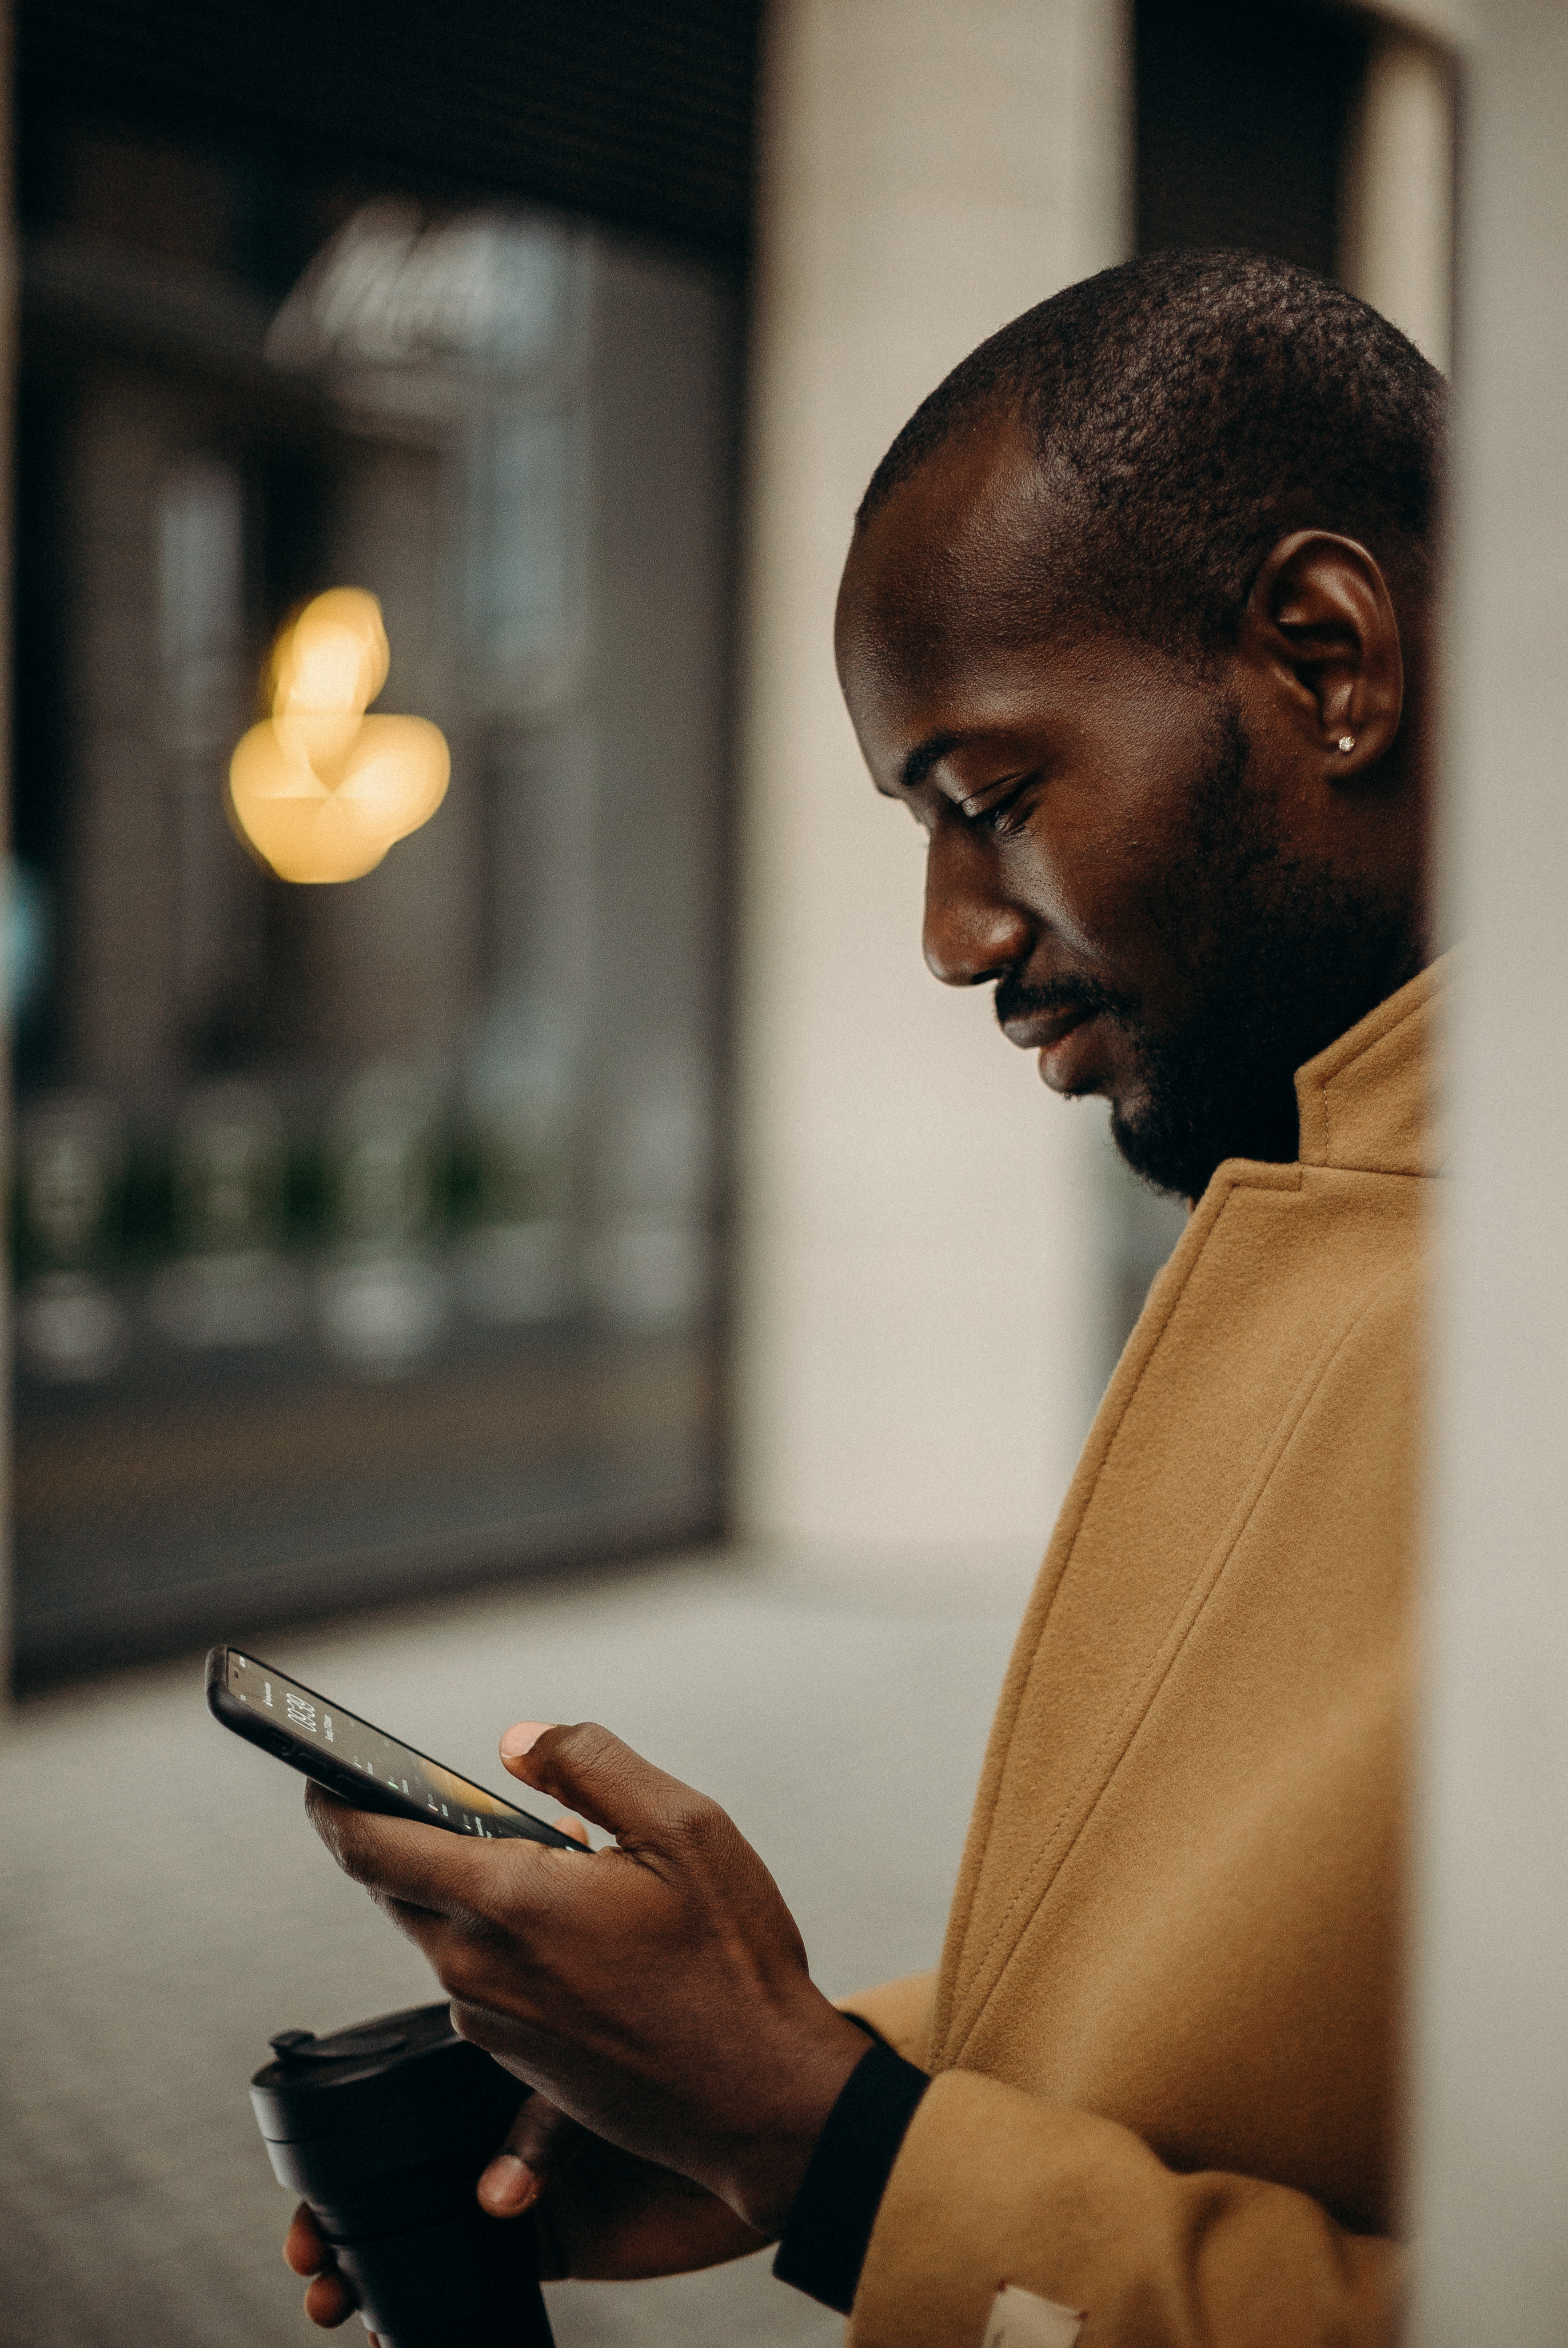 Side View Photo of Man in Brown Coat Using Smartphone While Holding Cup of Coffee